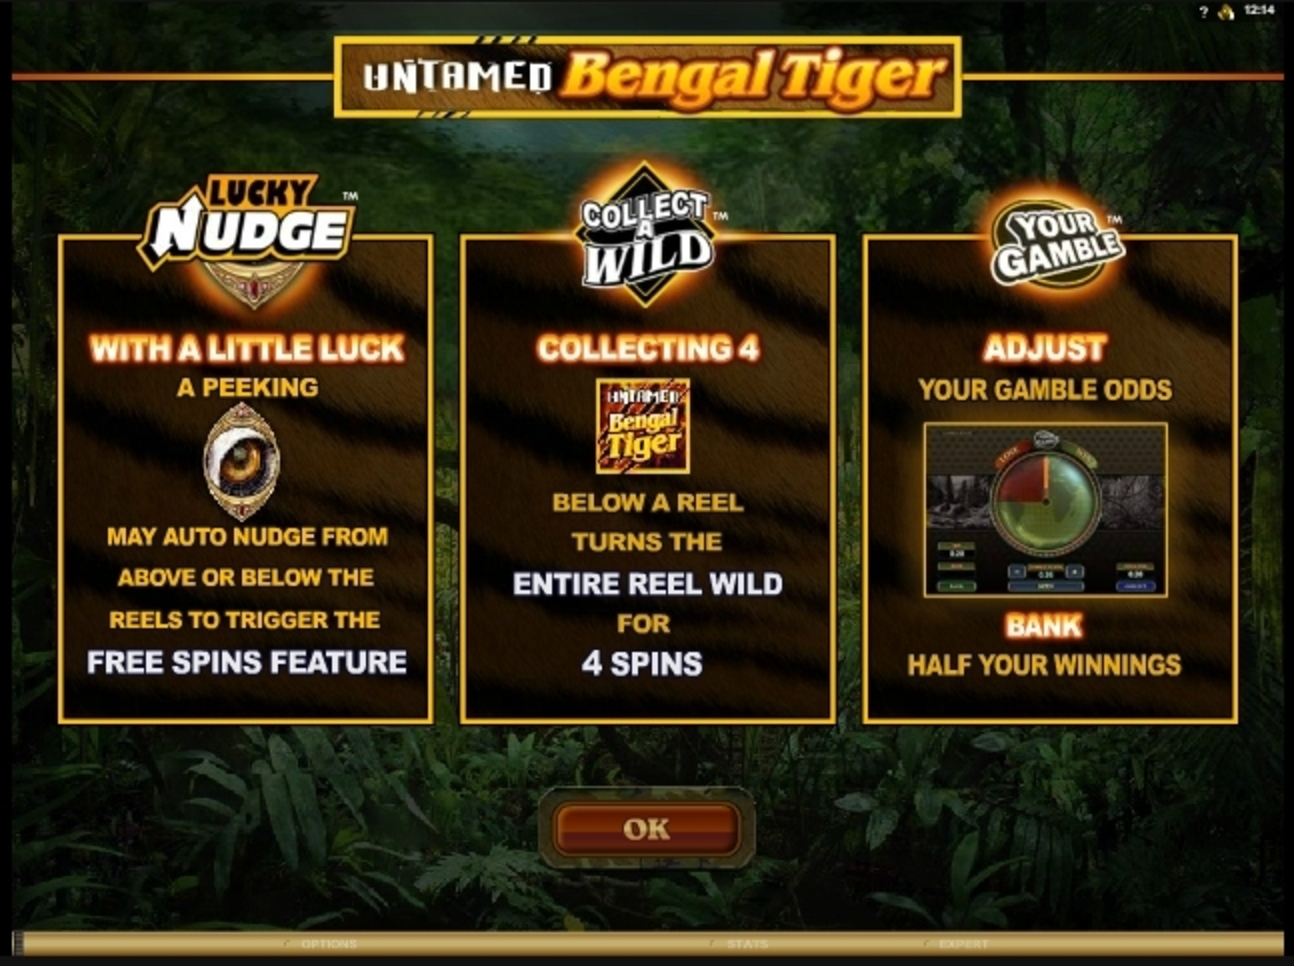 Play Untamed Bengal Tiger Free Casino Slot Game by Microgaming